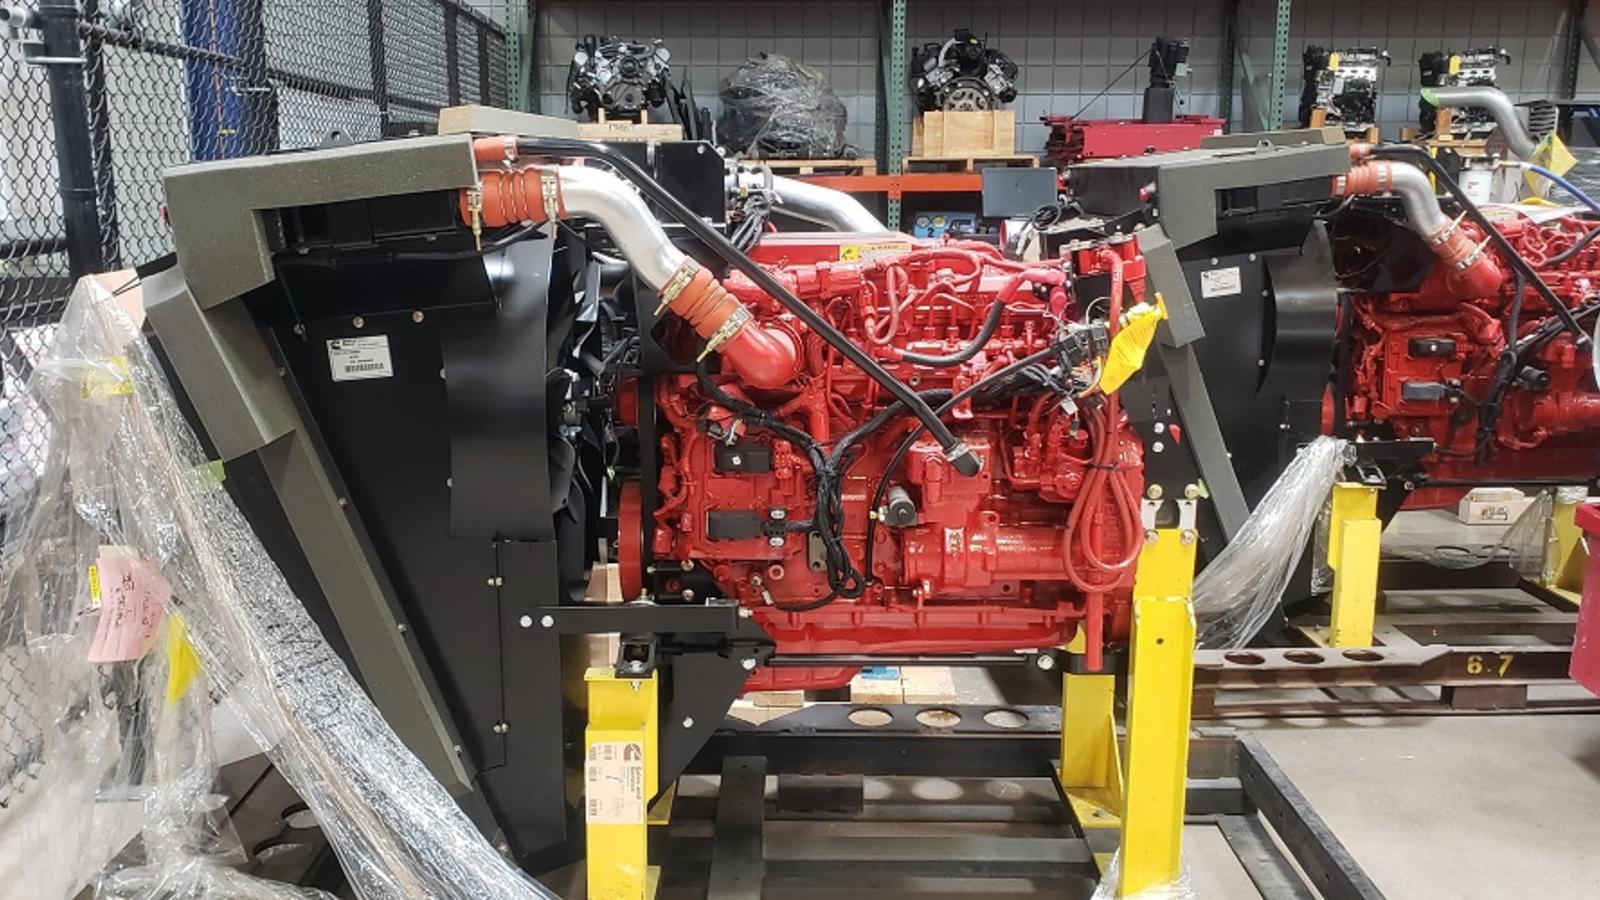 This is the left-side view of the Cummins 6.7 Liter Diesel 6-cylinder engine.